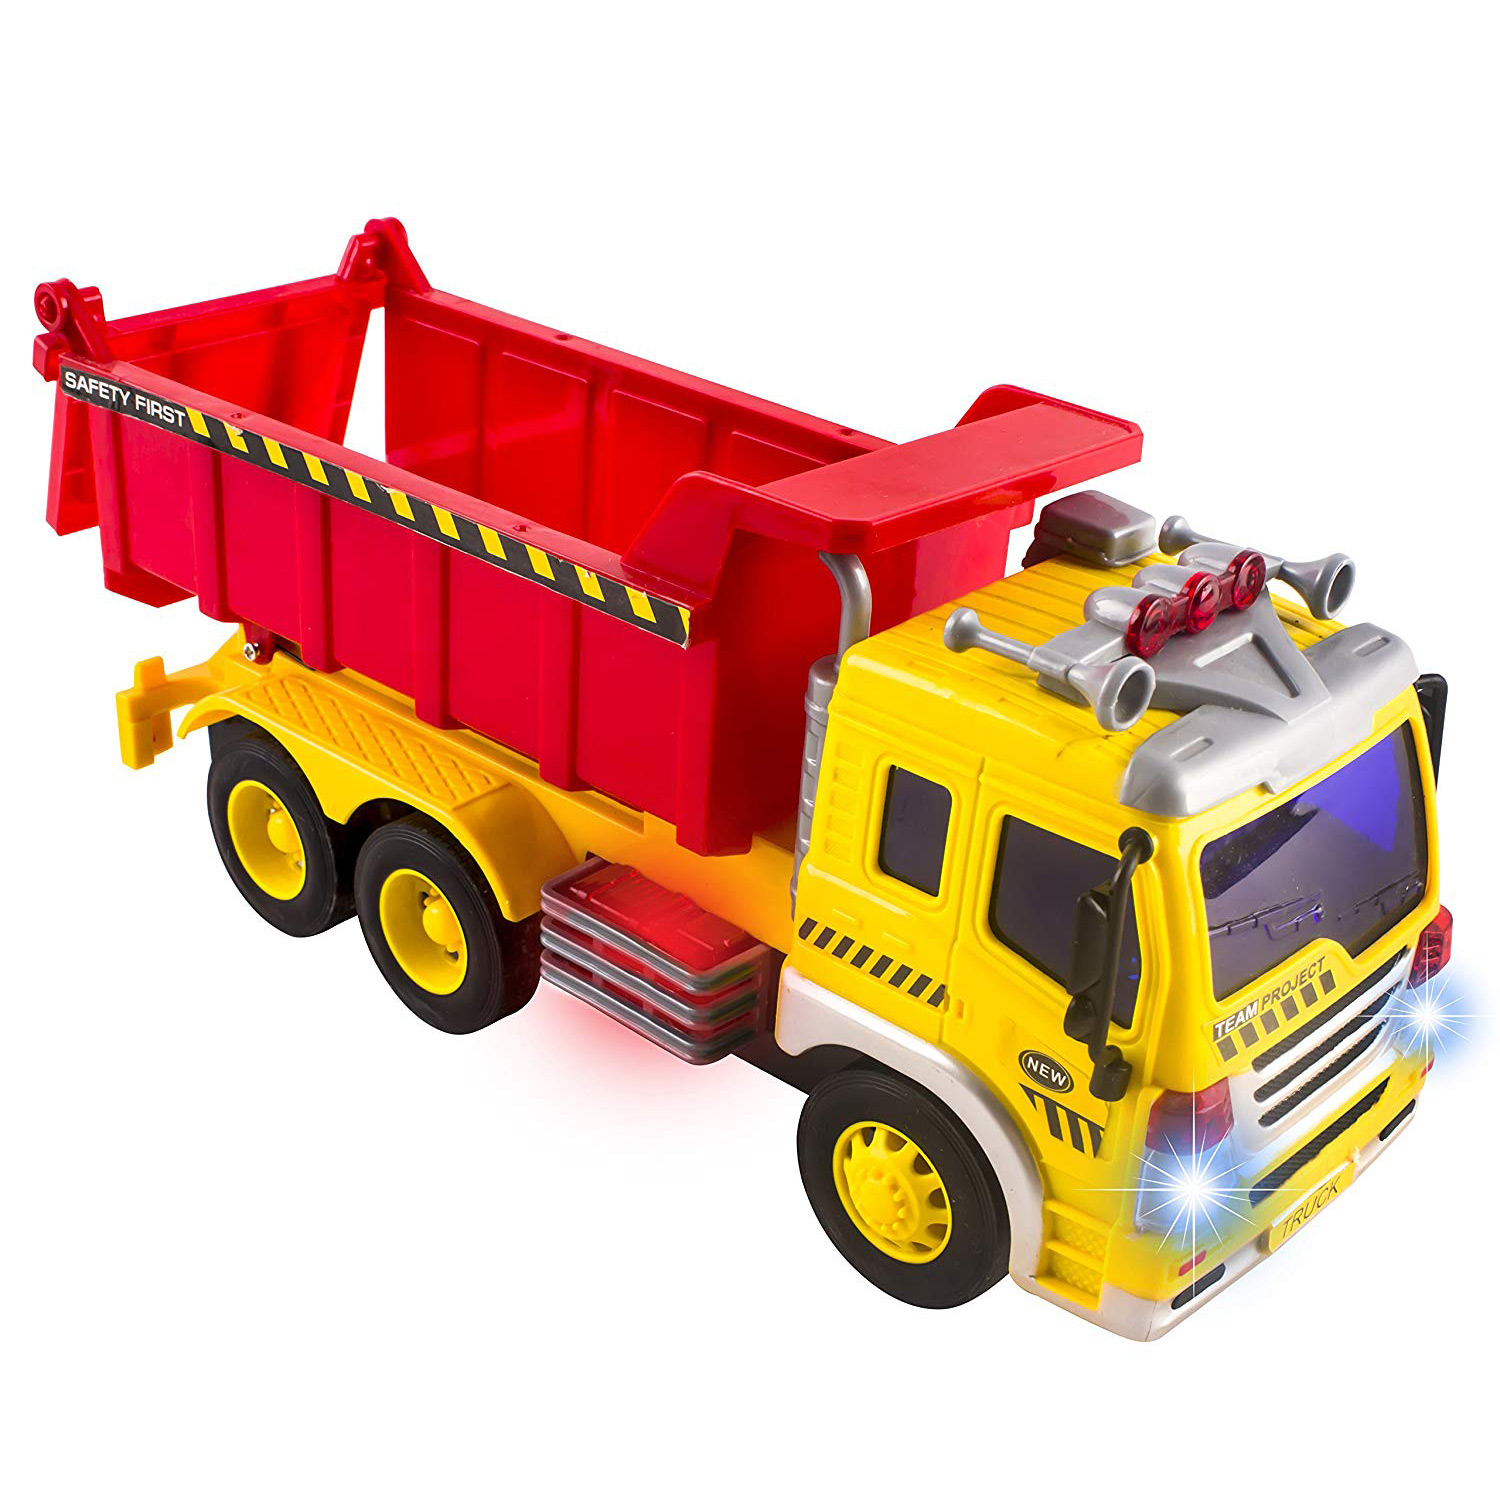 Friction Powered Construction Dump Truck With Lights Sound And Working Headlights Kids Toy Vehicle Moves Around Changes Directions On Contact Includes Batteries